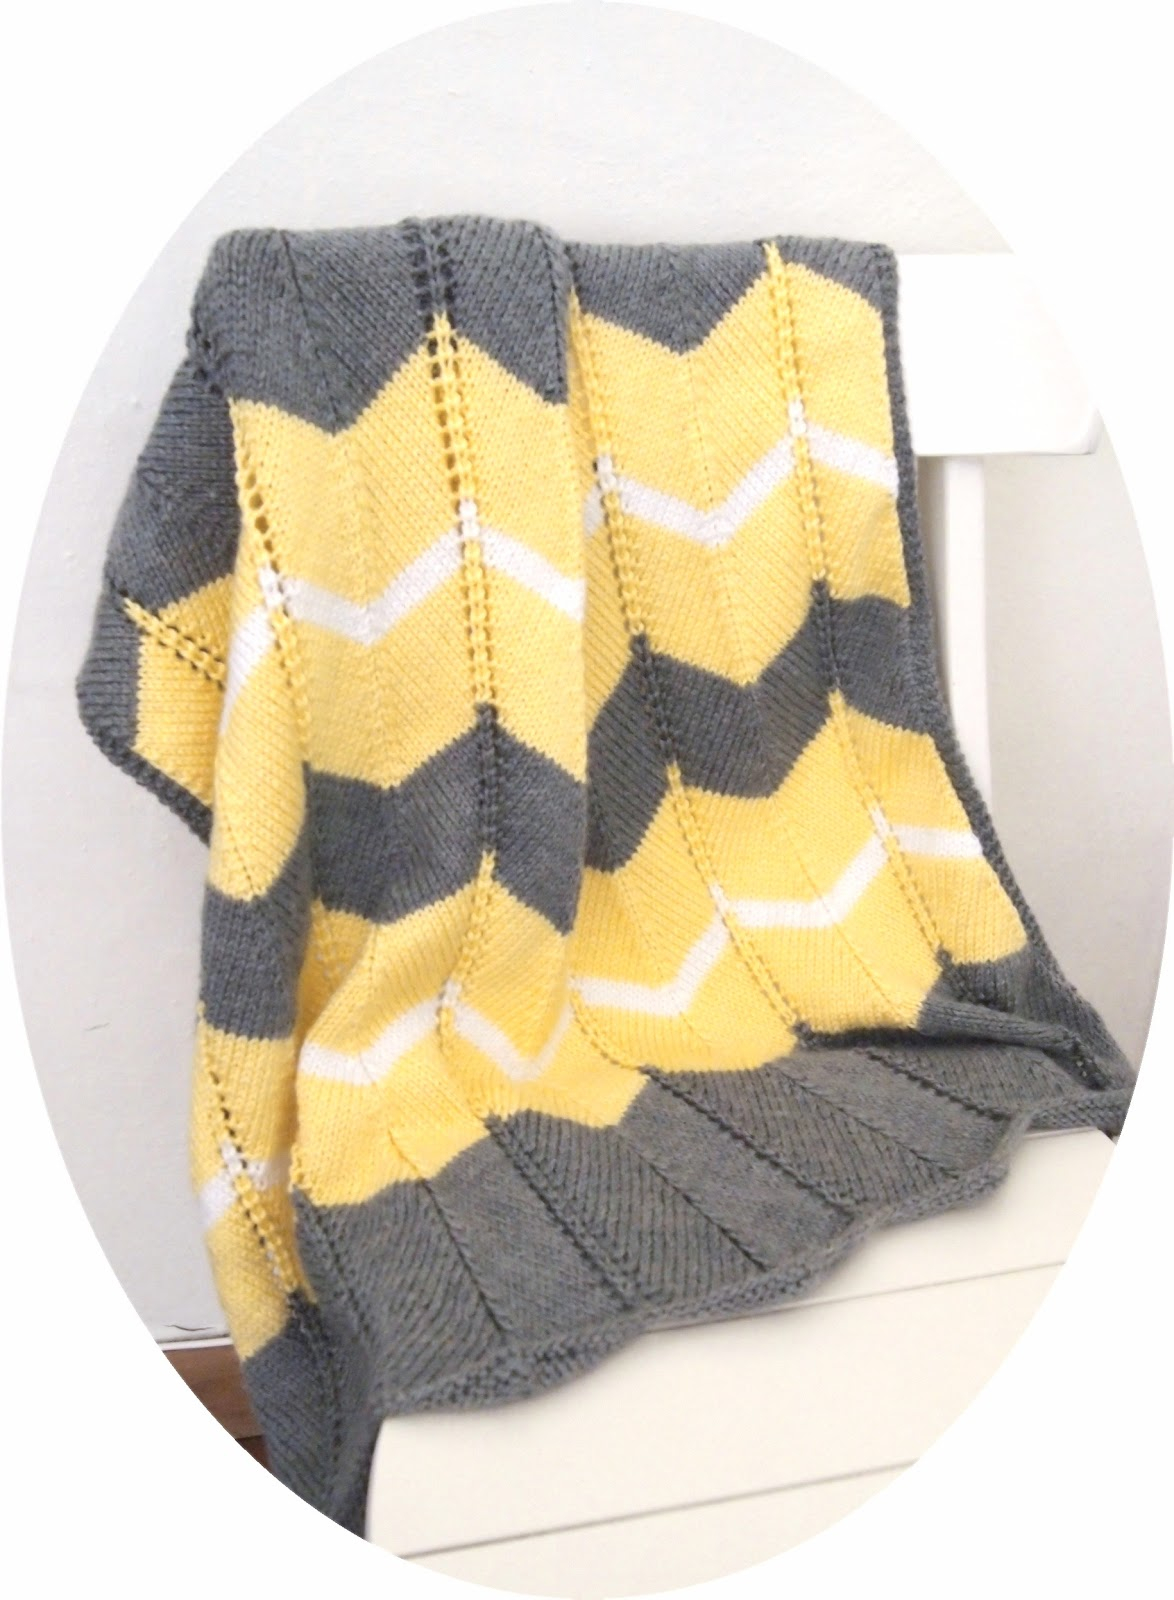 Chevron Knitting Pattern She Is Crafting My Doom Striped Chevron Ba Blanket Free